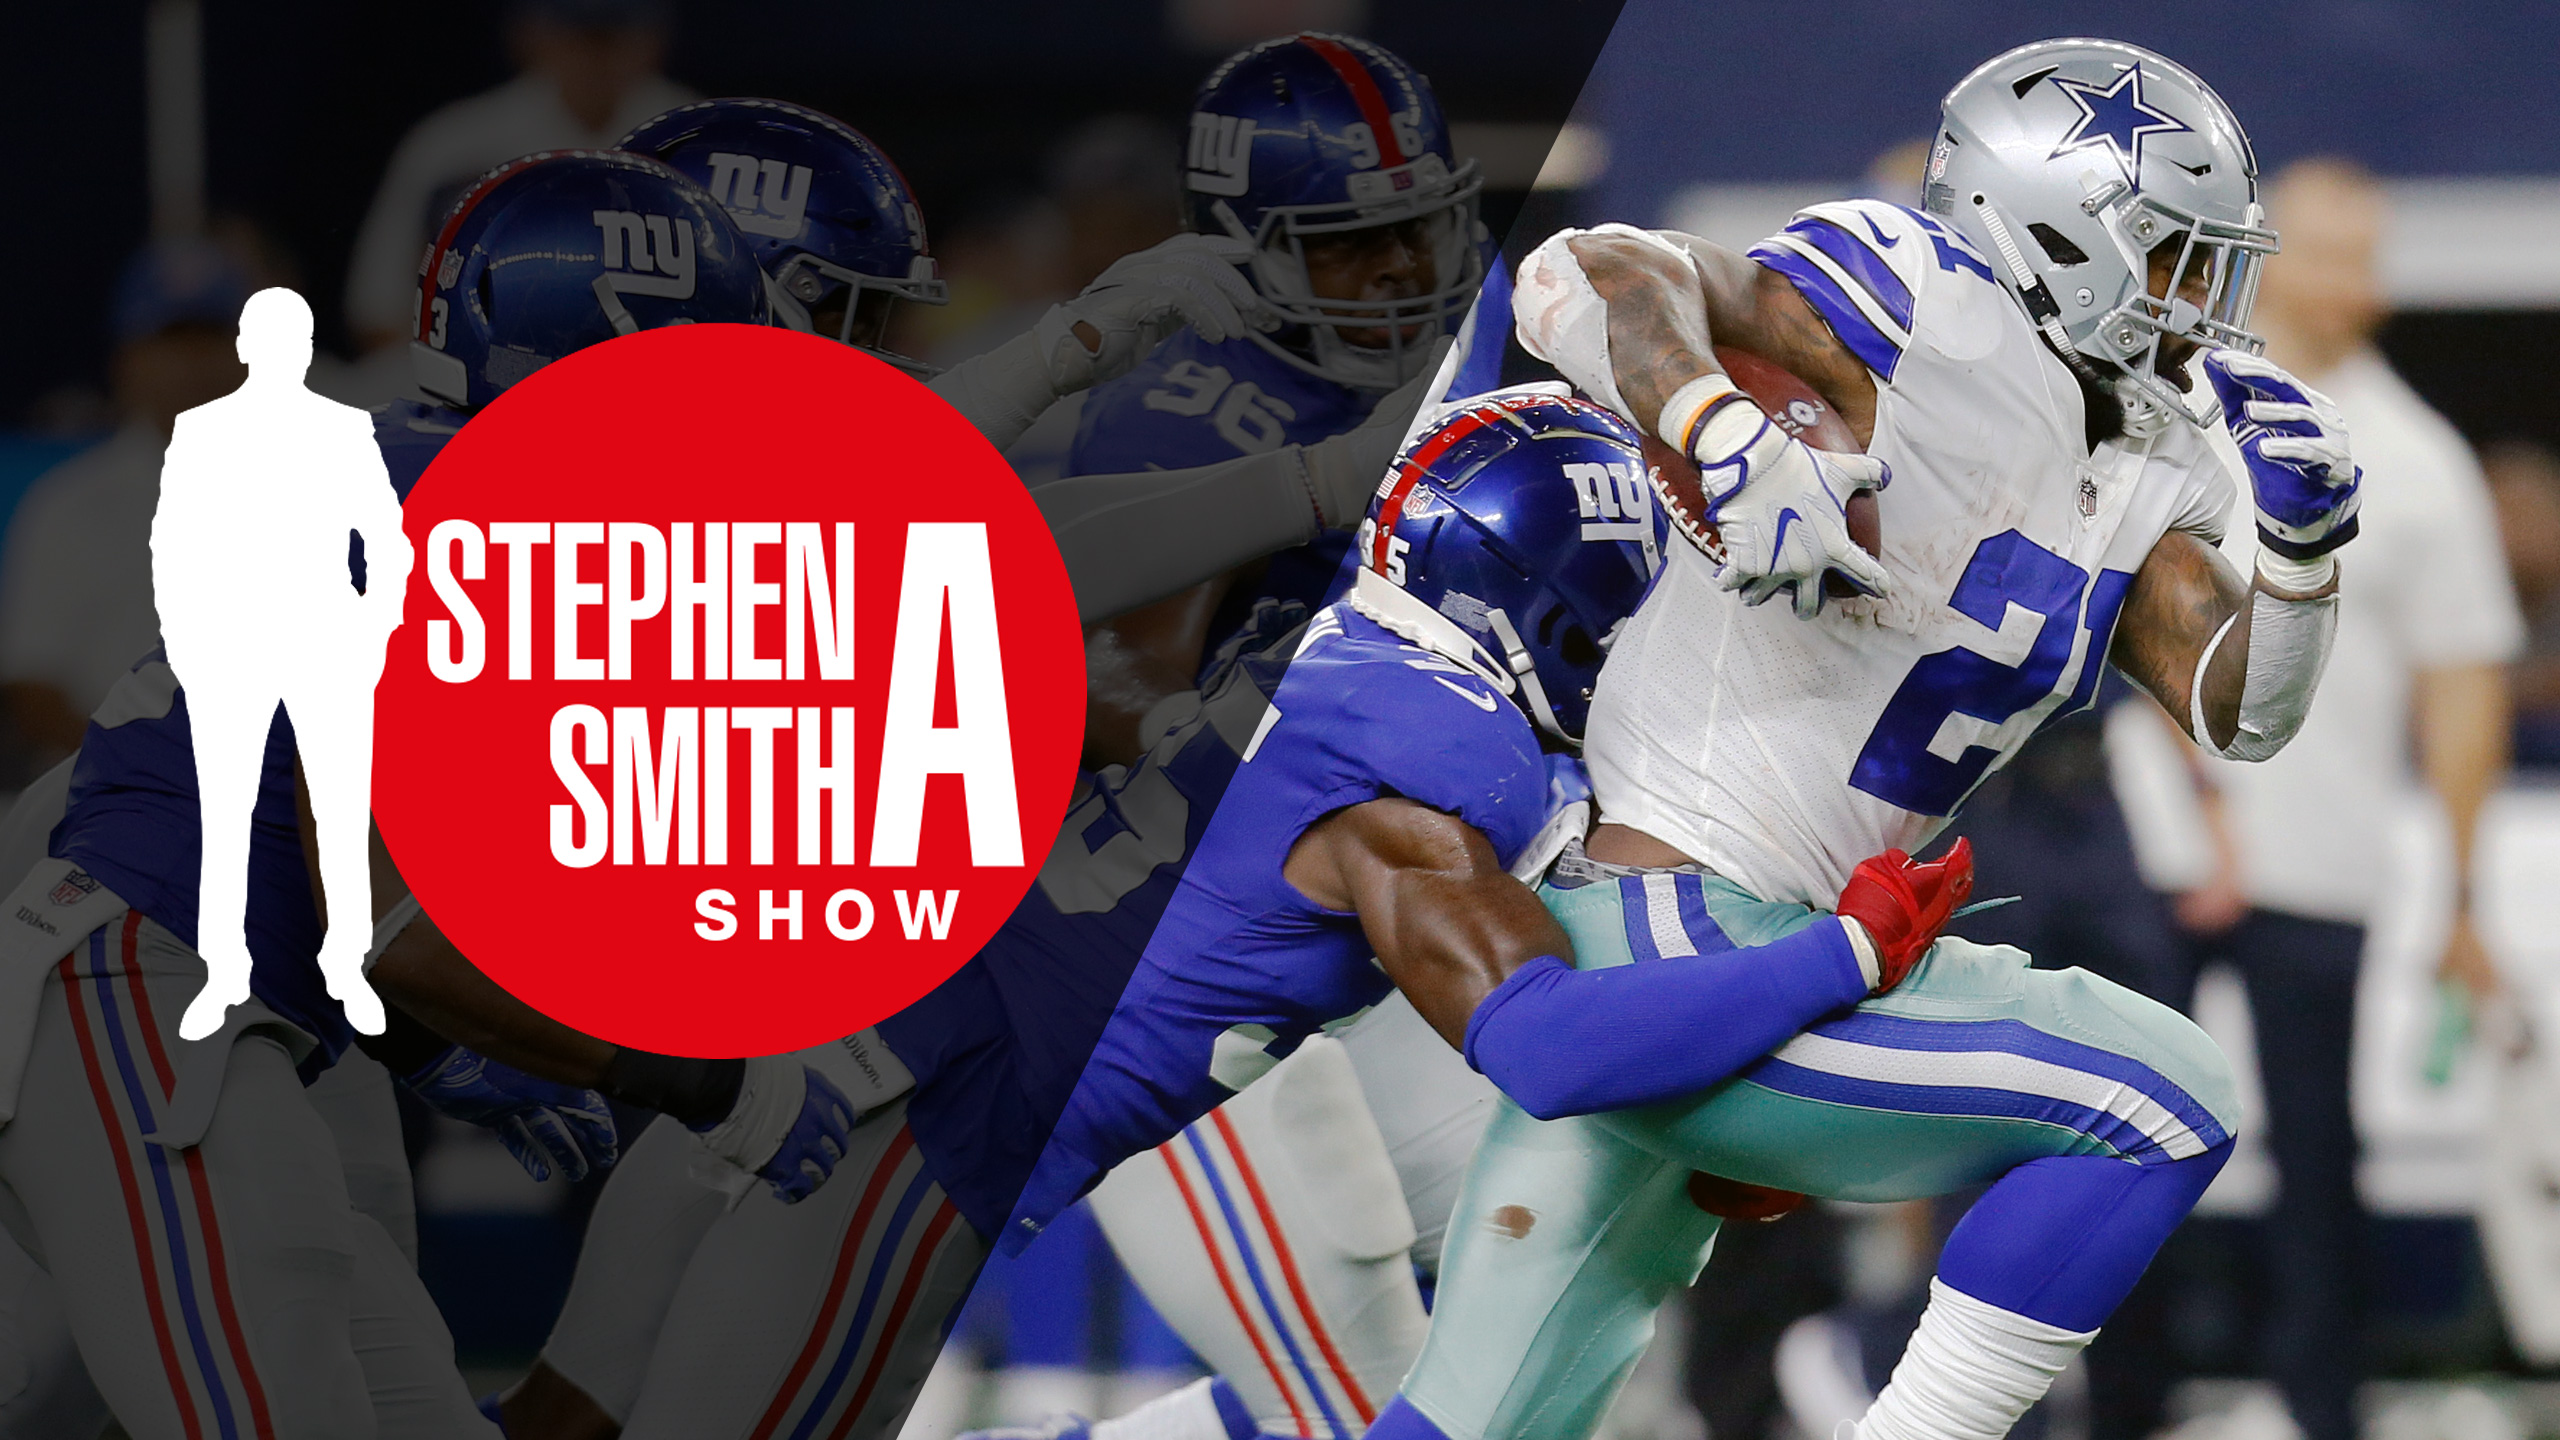 Mon, 9/17 - The Stephen A. Smith Show